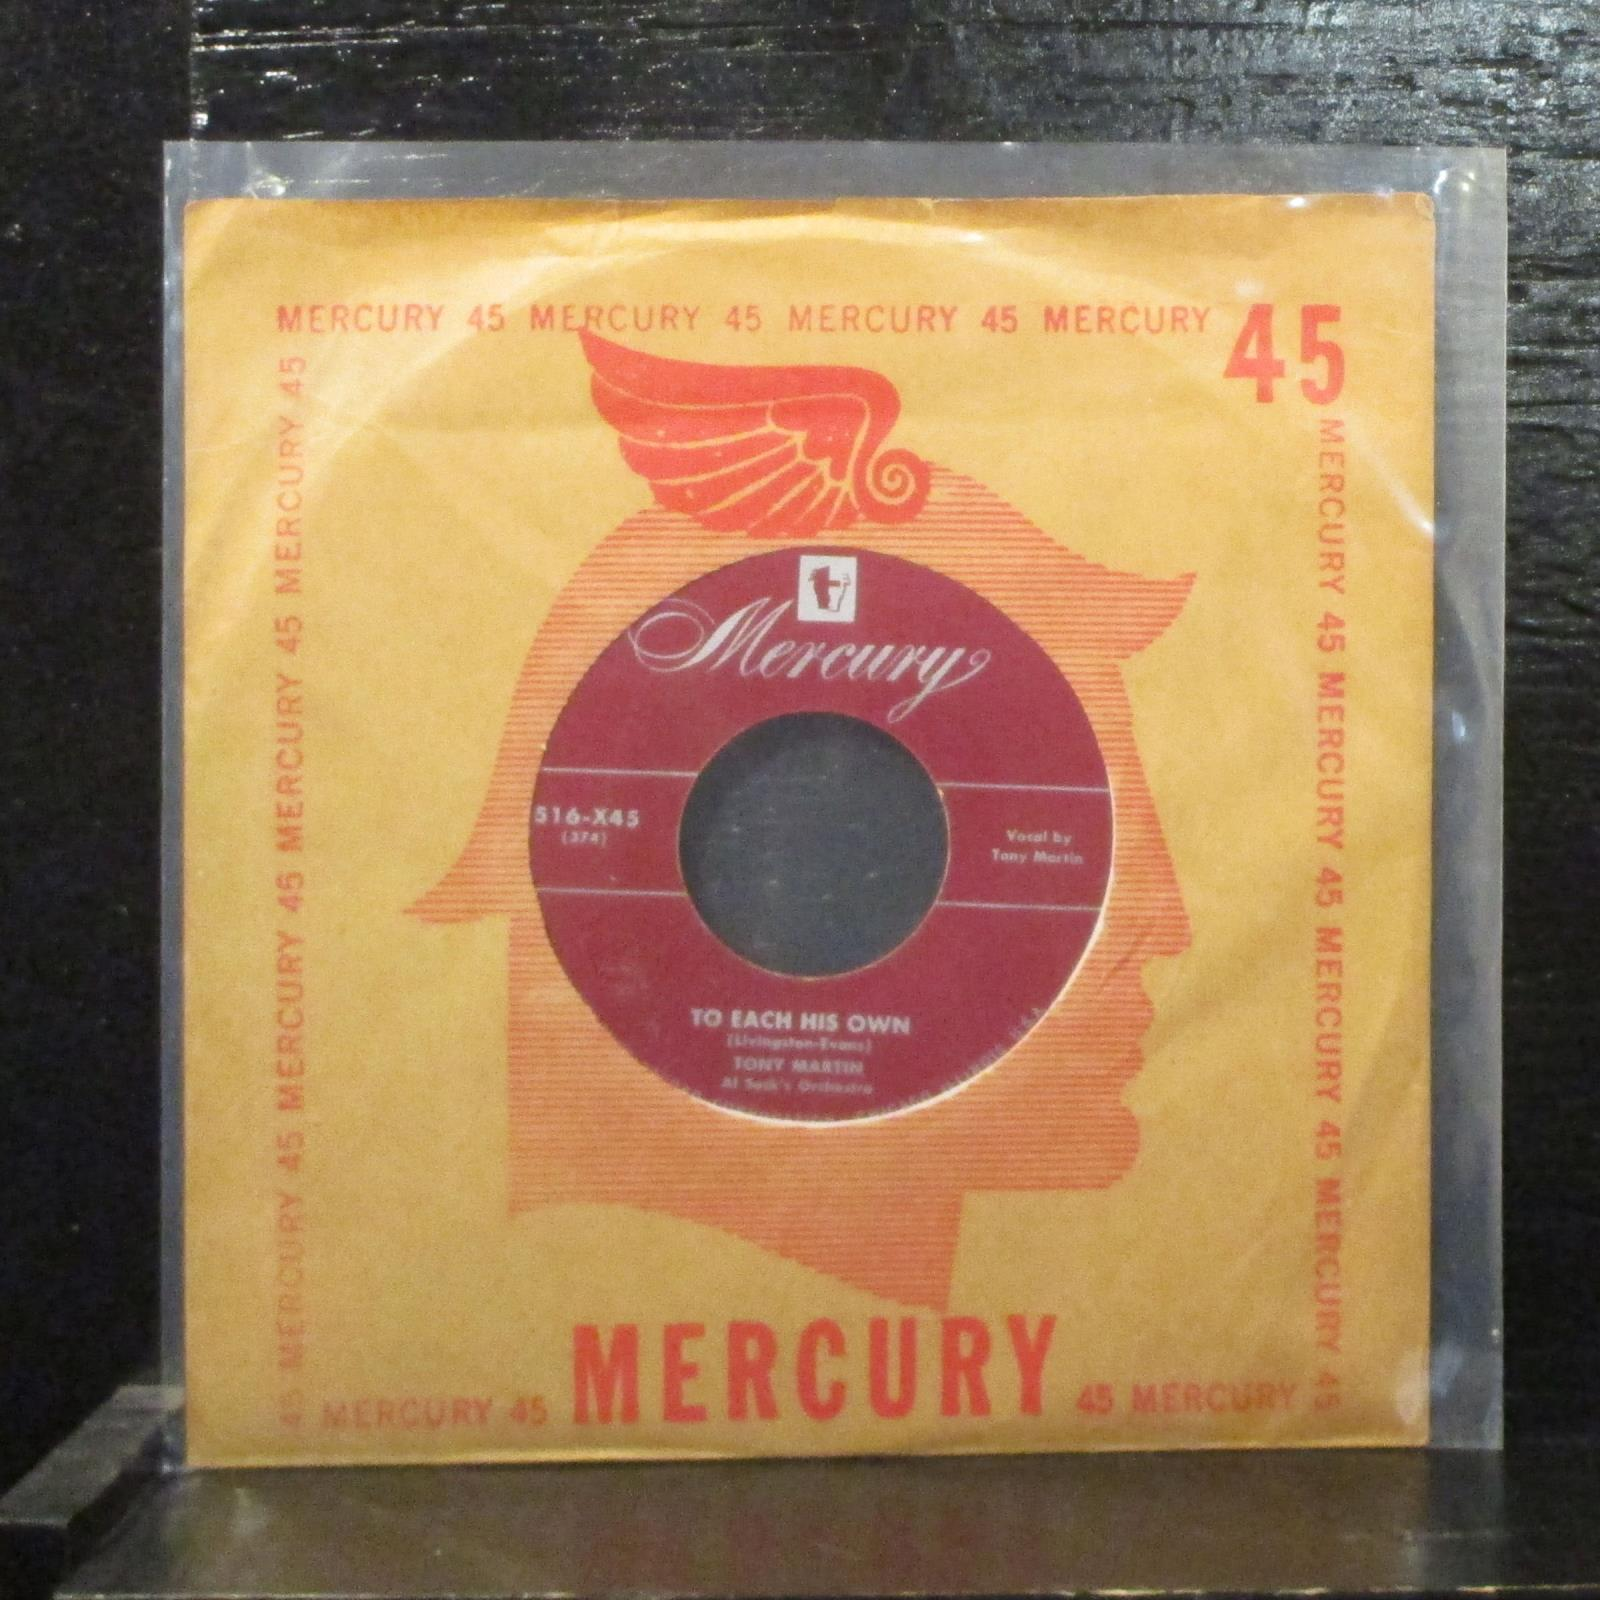 "Tony Martin  To Each His Own Mint- 7"" Vinyl 45 Mercury 516-X45 Folk / Country"